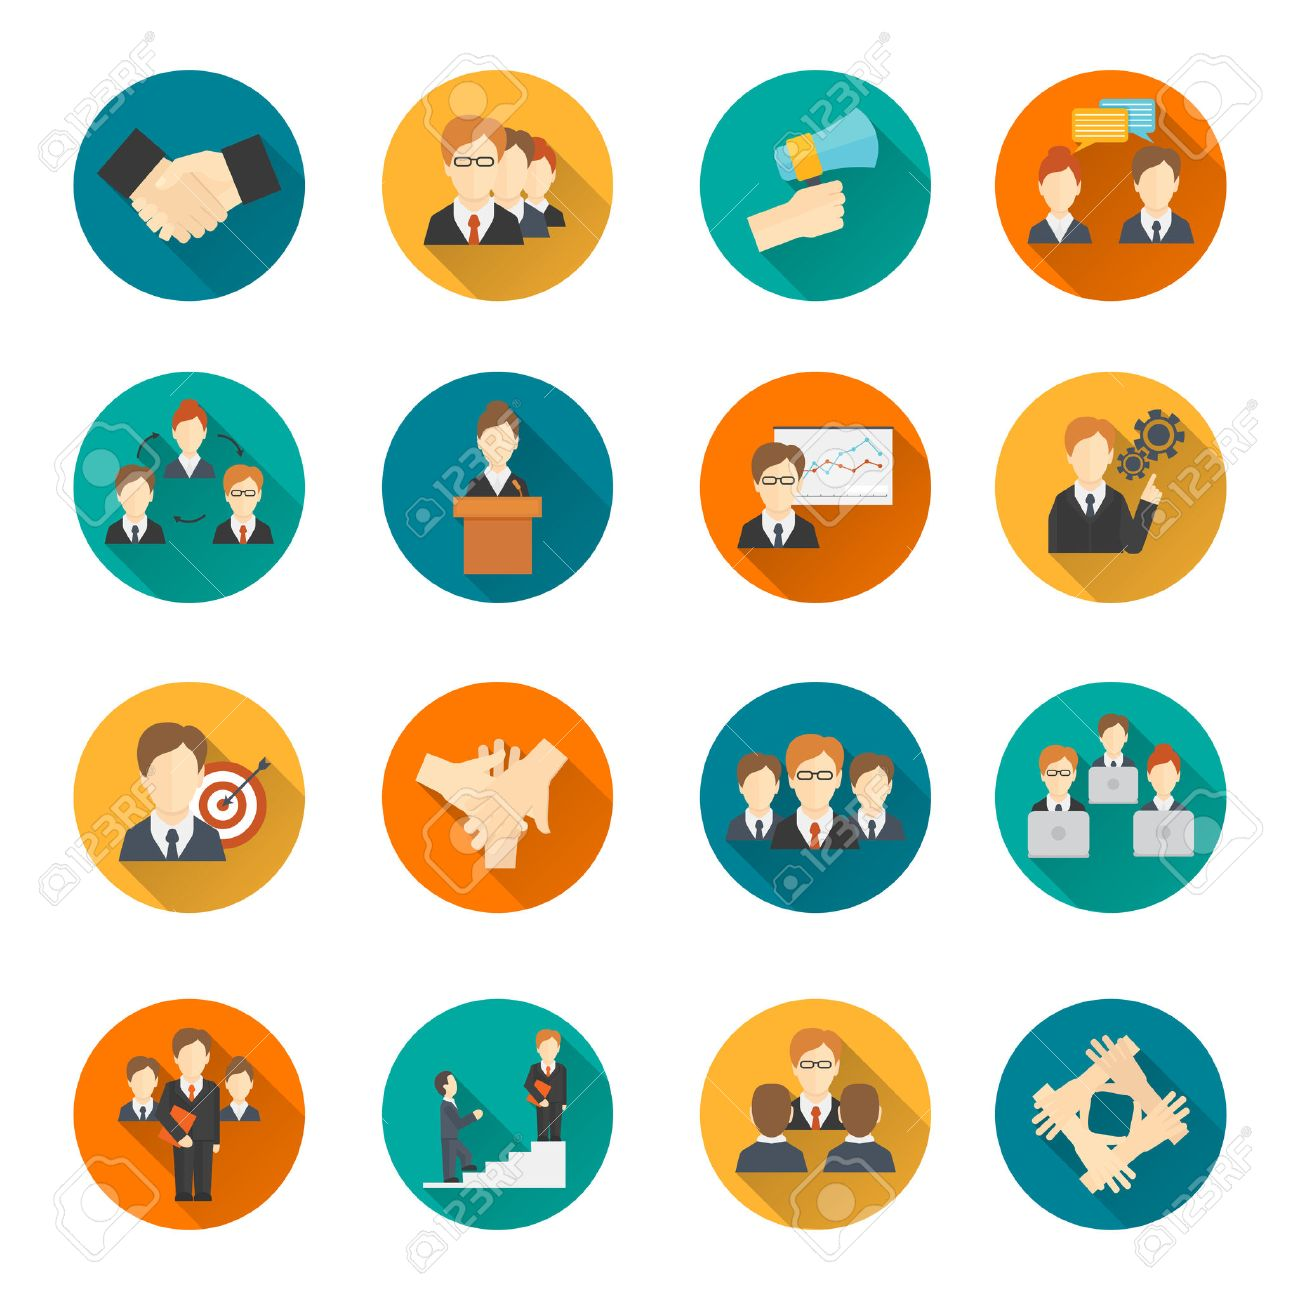 Teamwork corporate organization business strategy flat round button icons set isolated vector illustration - 31467692